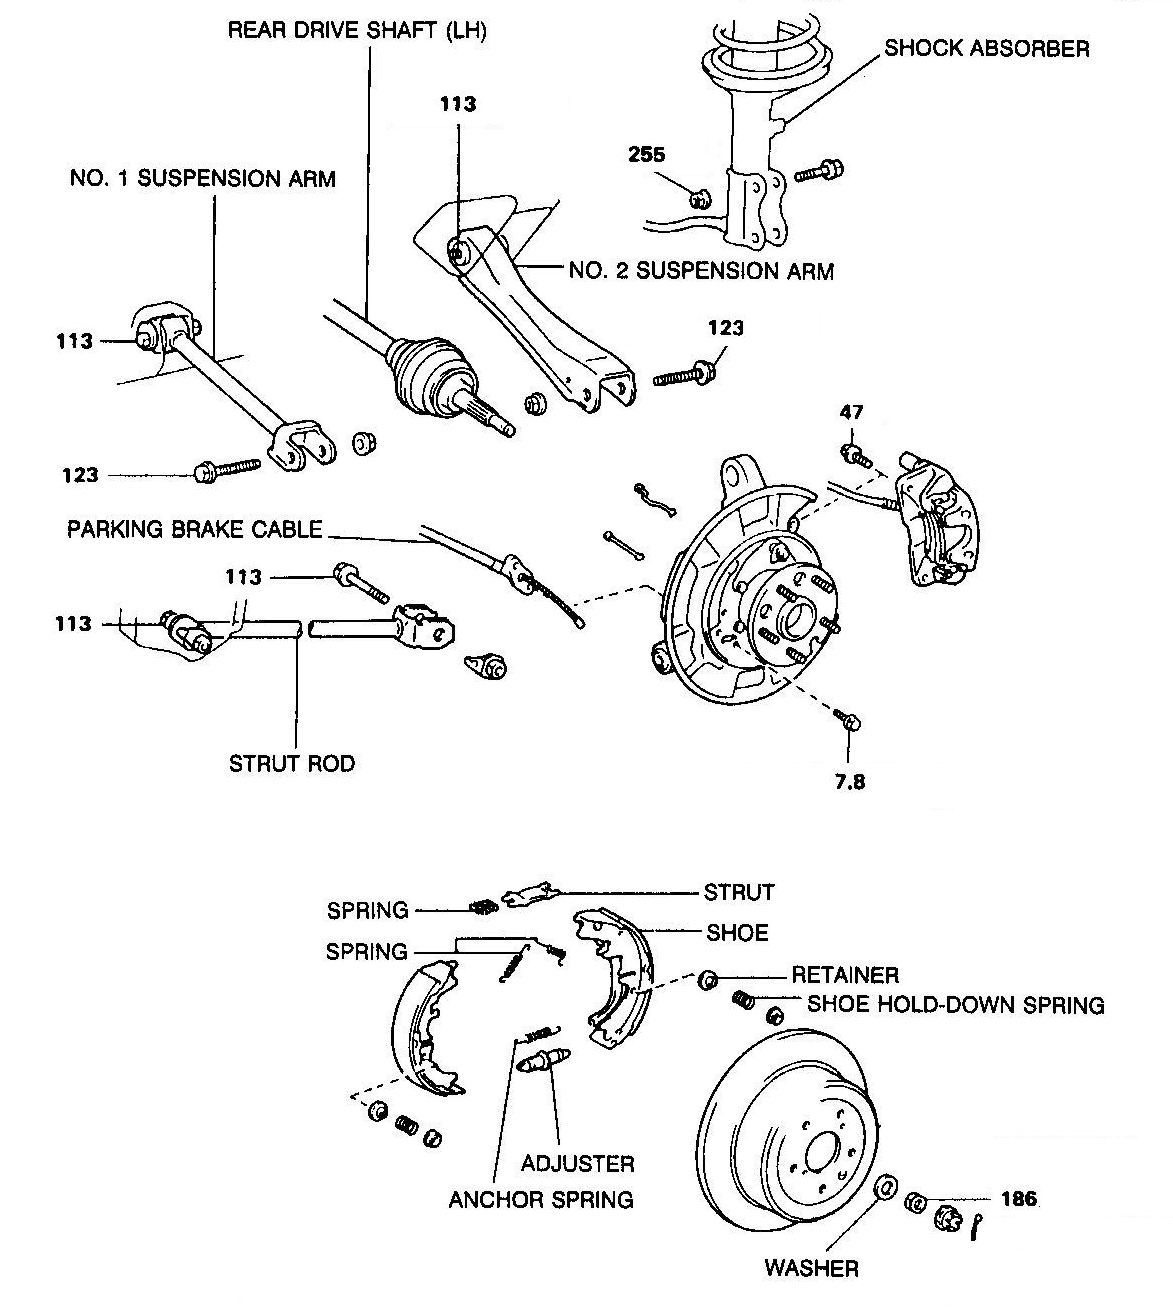 How To Replace The Rear Suspension Bushes On A Toyota